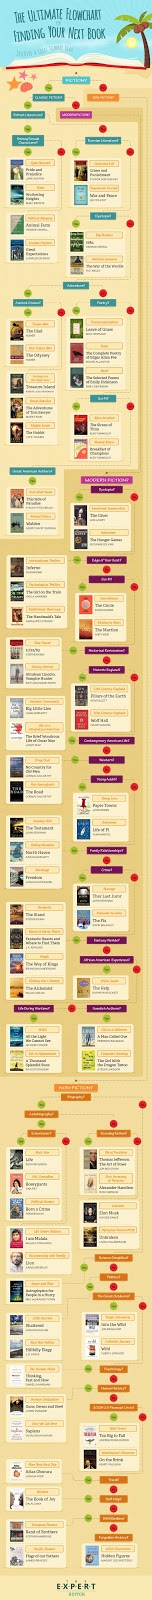 The Ultimate Flowchart for Finding Your Next Book #Infographic